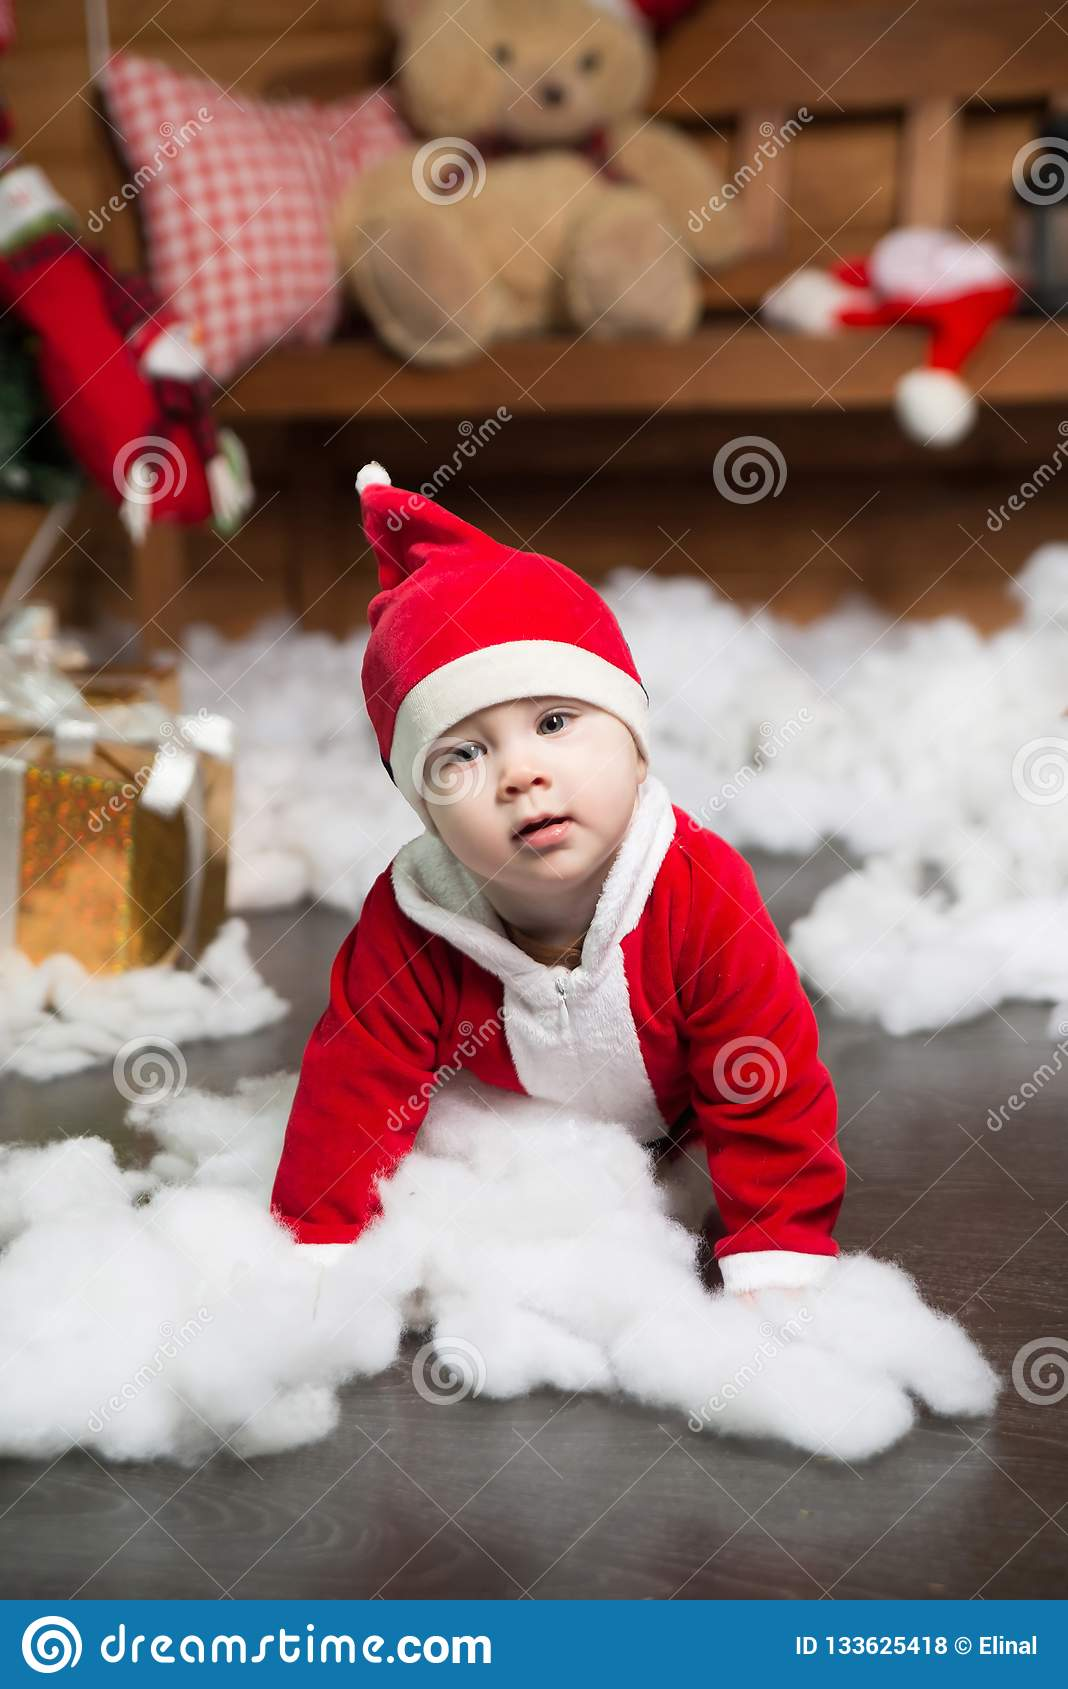 d7518f54042d Baby Boy In Santa Costume. Christmas. New Year Stock Photo - Image ...